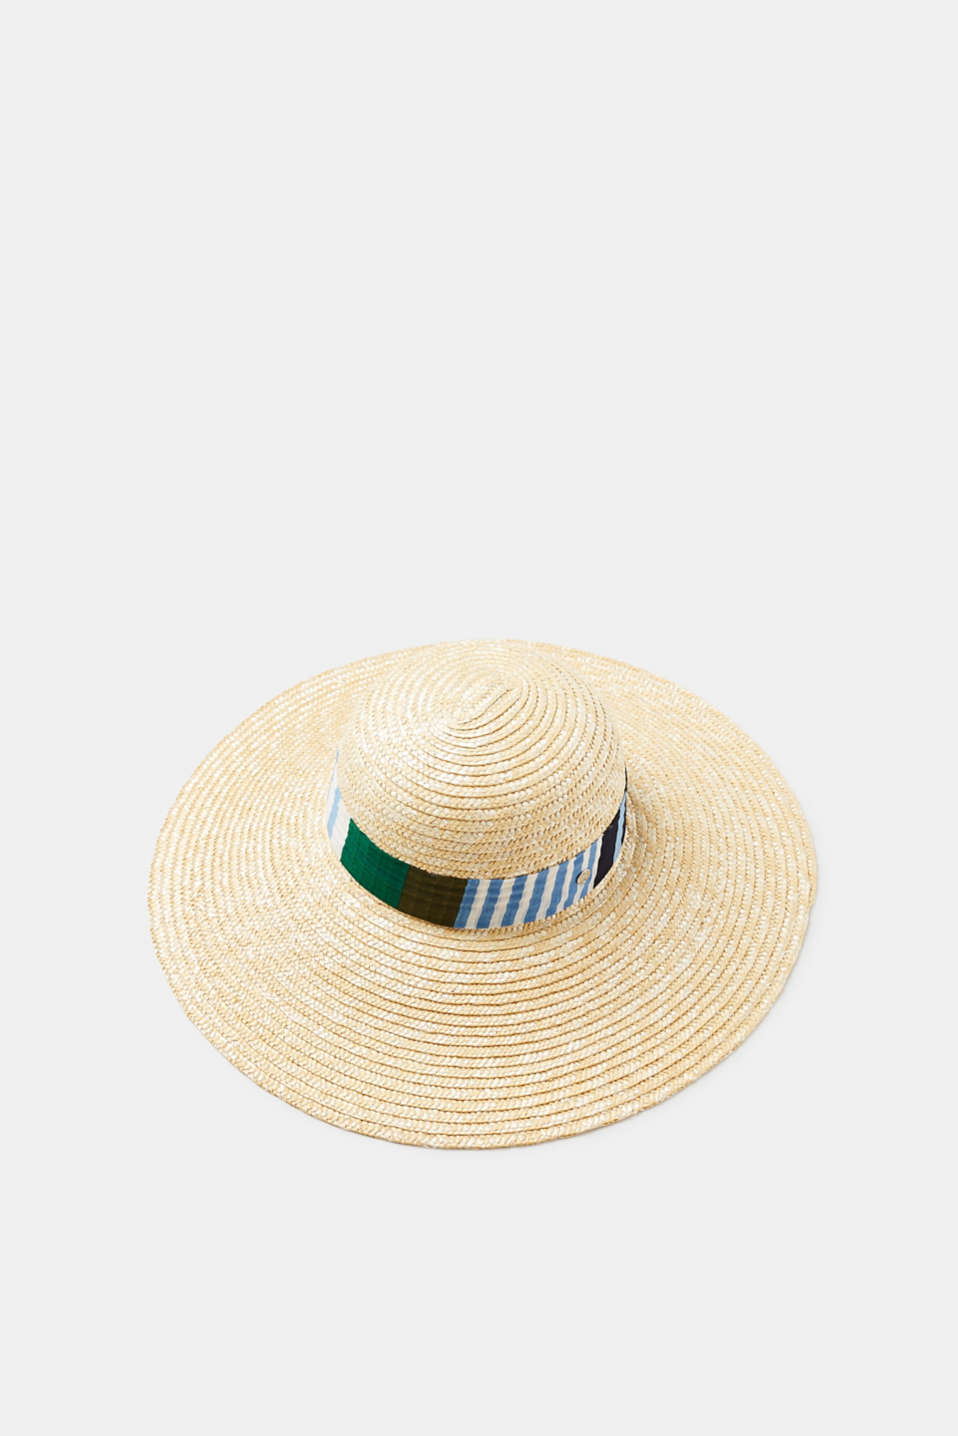 For the beach or the city, this summer hat with a wide brim and a decorative band provides ideal protection from the sun and rounds your look off in stylish fashion.